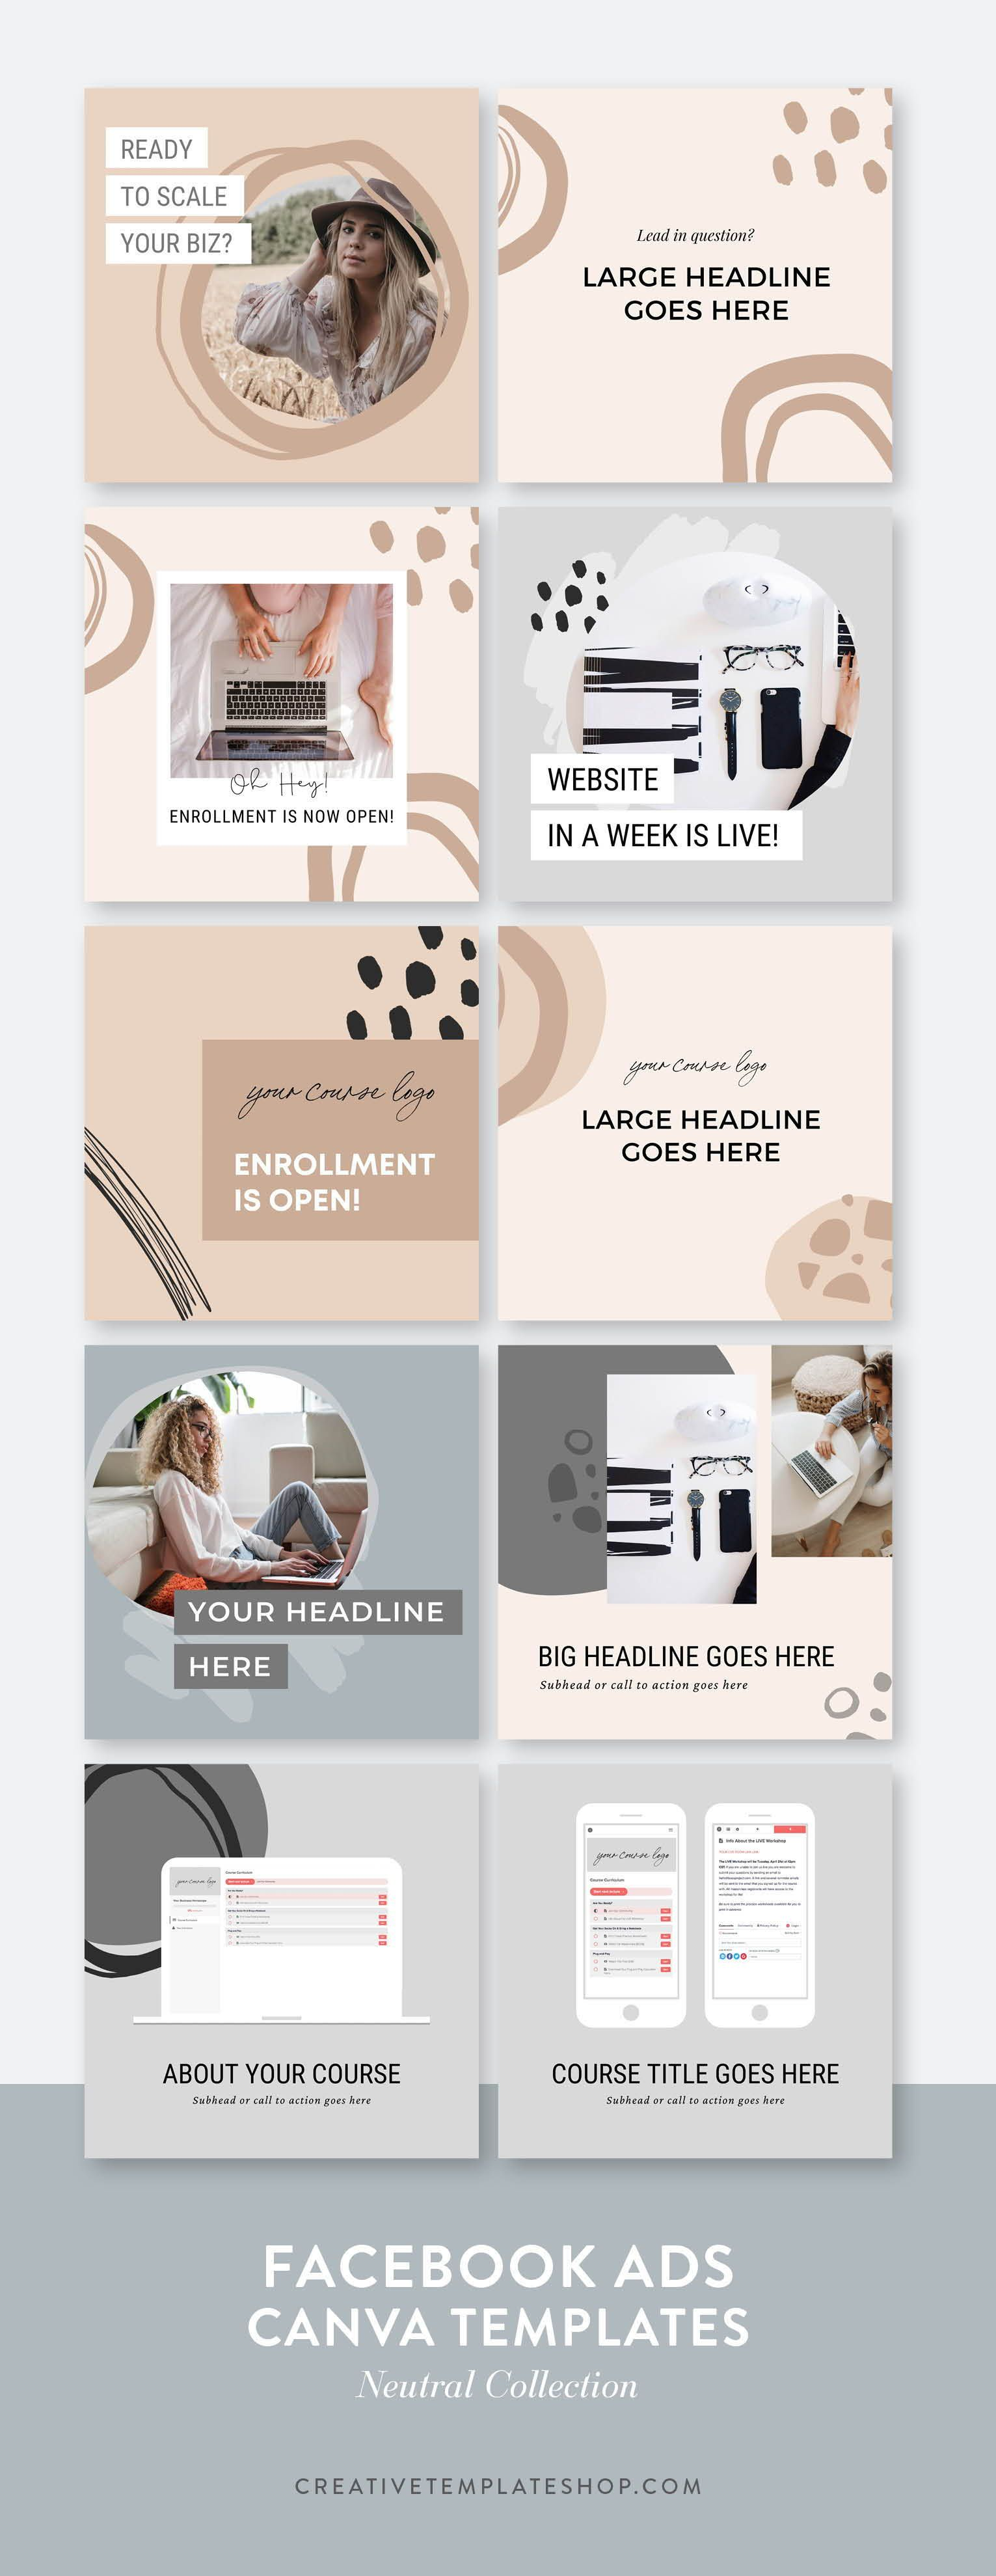 Advertising-Infographics-Facebook-Ad-Templates-Canva-Neutral Advertising Infographics : Facebook Ad Templates | Canva | Neutral Collection — The Creative Template Shop